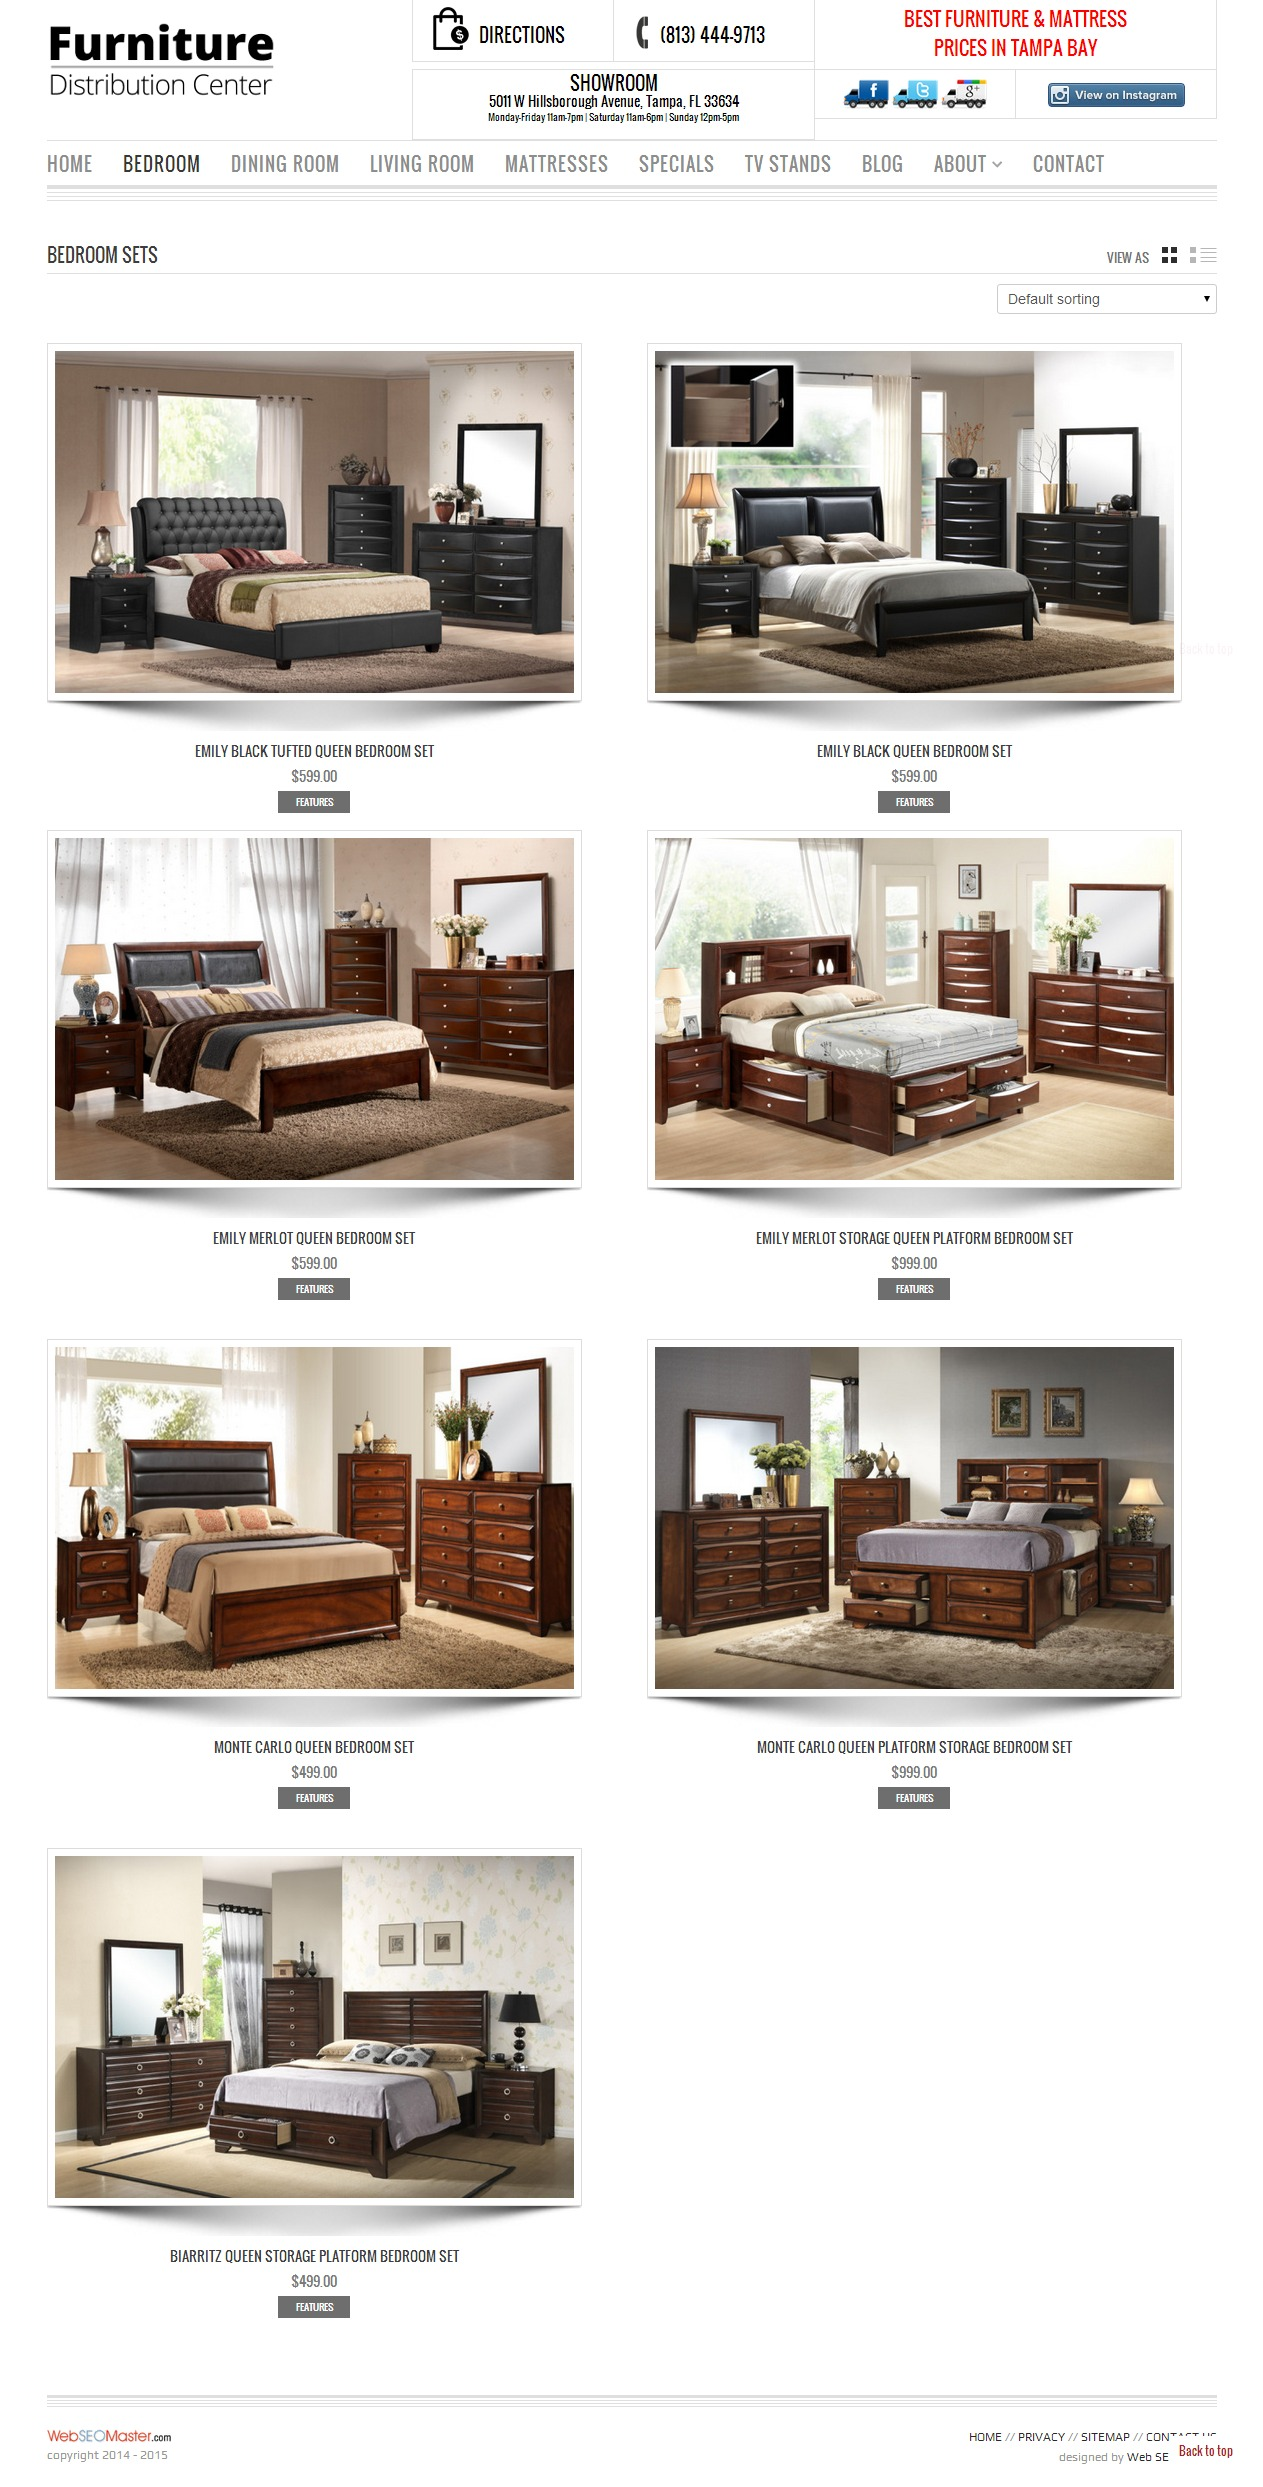 Furniture Distribution Center Viralweb Web Design And Seo Services Call 678 995 5516